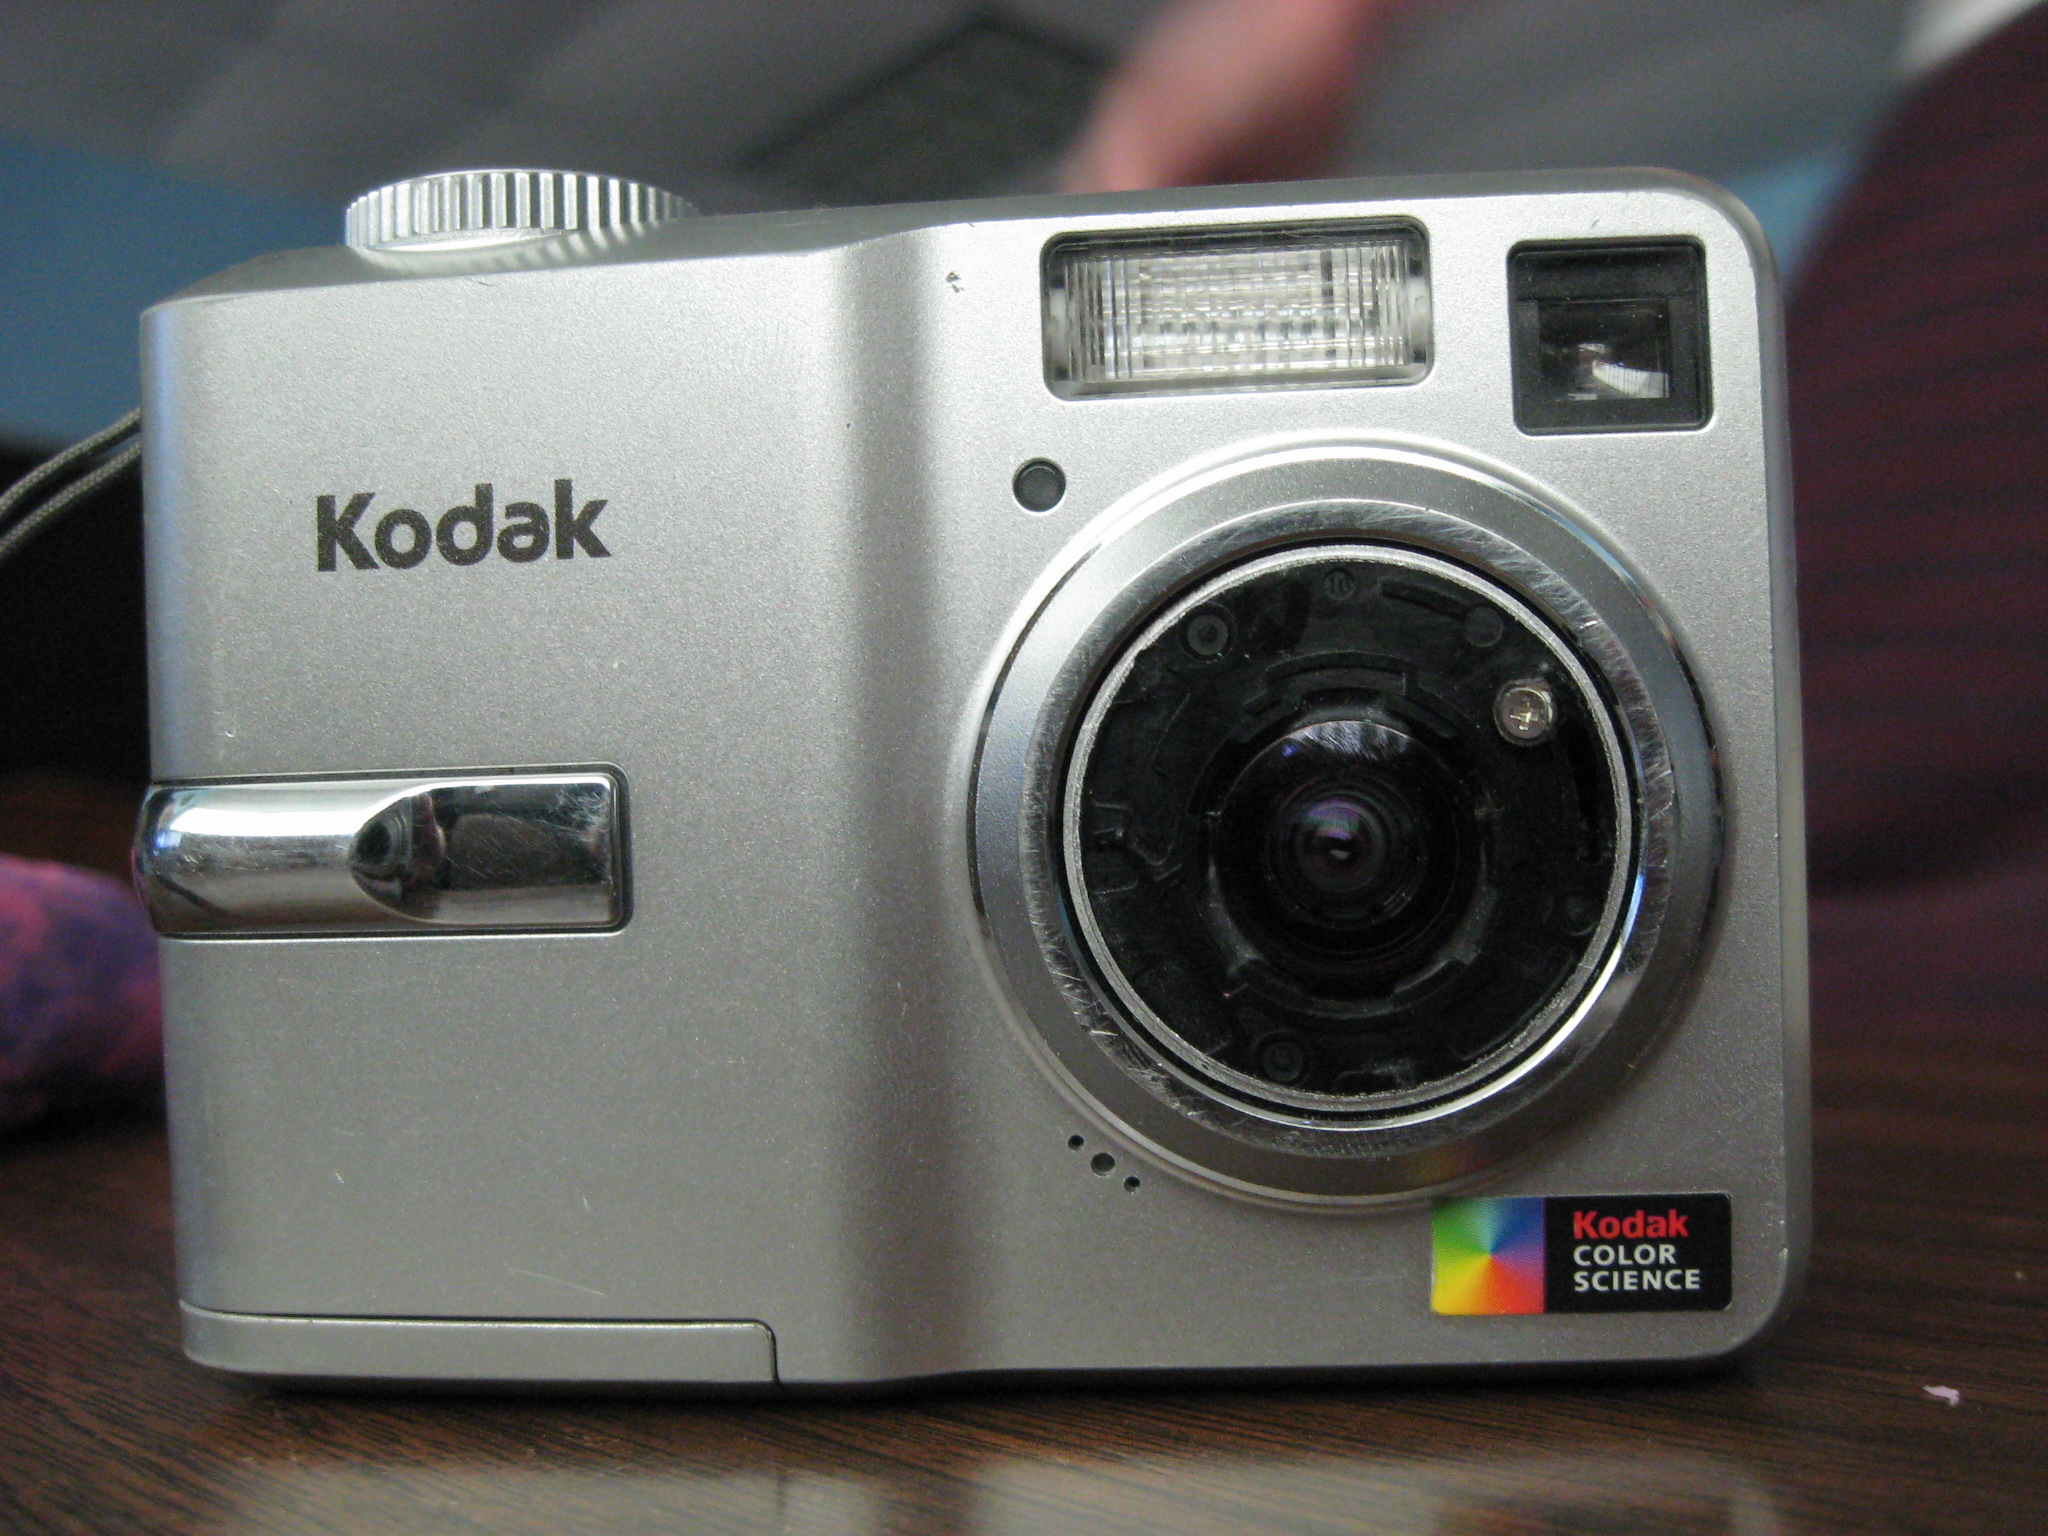 kodak digital camera industry Companies often see the disruptive forces affecting their industry kodak created a digital camera, invested in the technology, and even understood that photos would be shared online harvard business review.